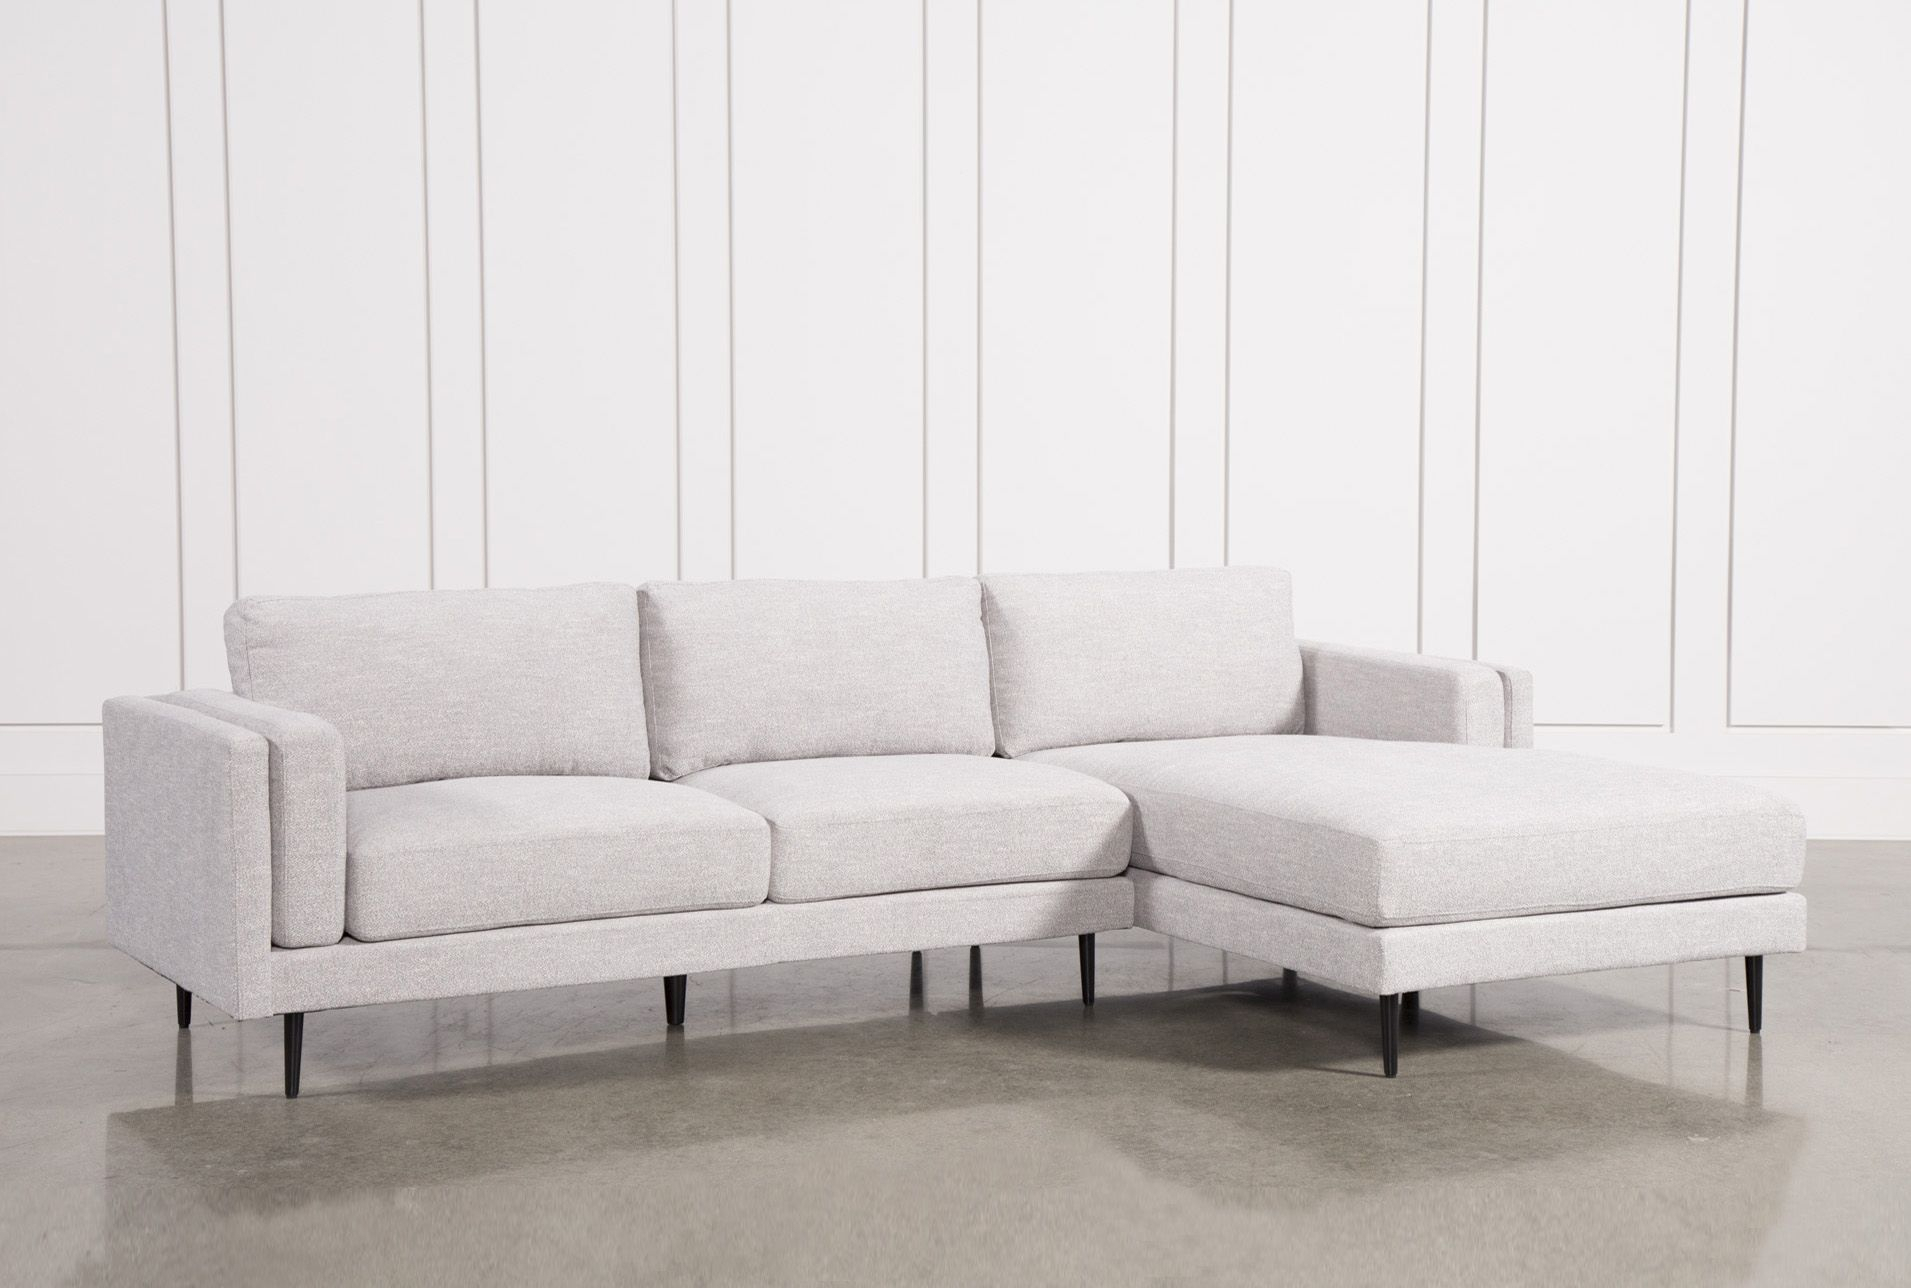 Aquarius Light Grey 2 Piece Sectional W/Raf Chaise, Sofas Inside 2Pc Crowningshield Contemporary Chaise Sofas Light Gray (View 2 of 15)